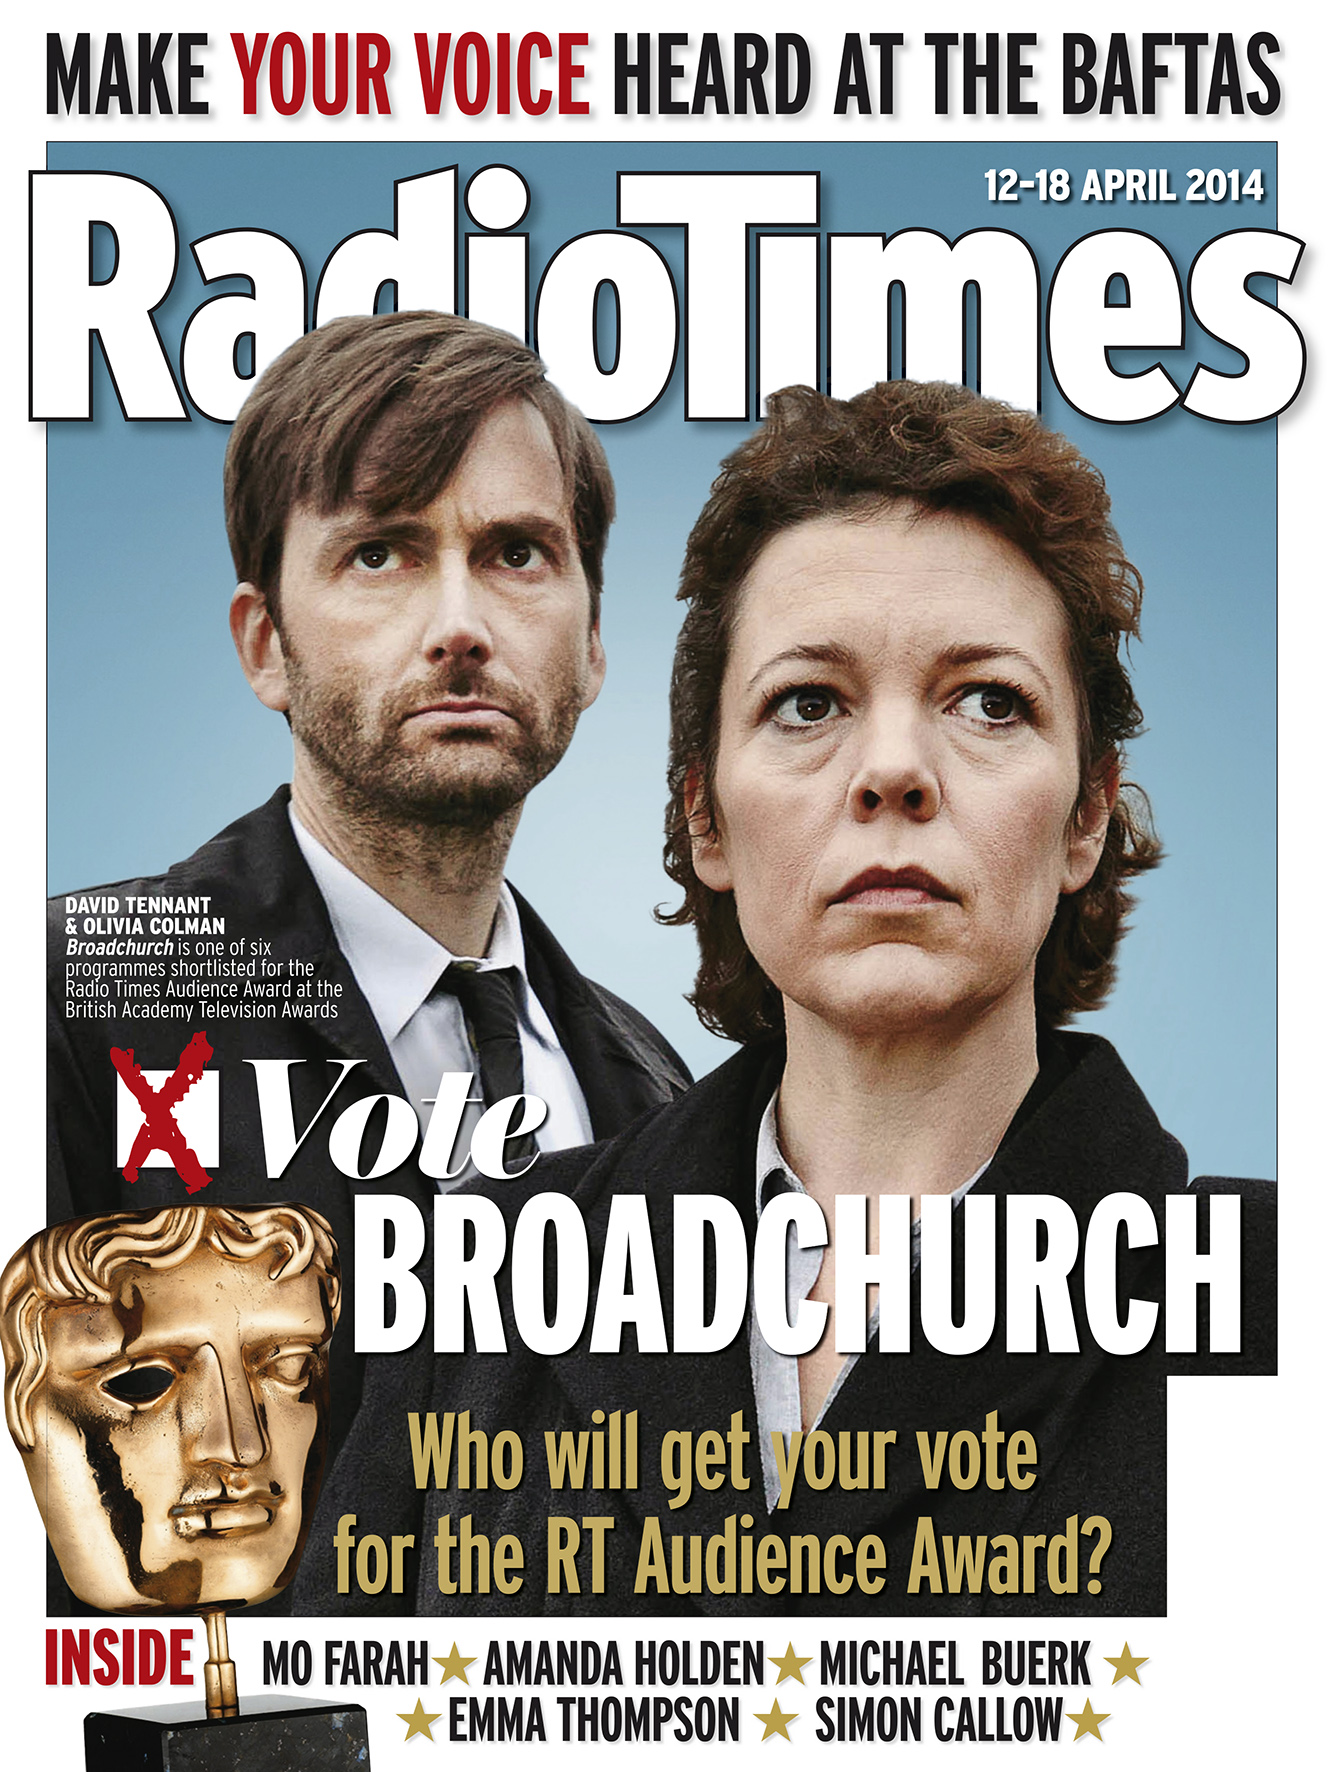 Radio Times (12-18 Apr 2014) - Broadchurch cover (Credit: Radio Times)